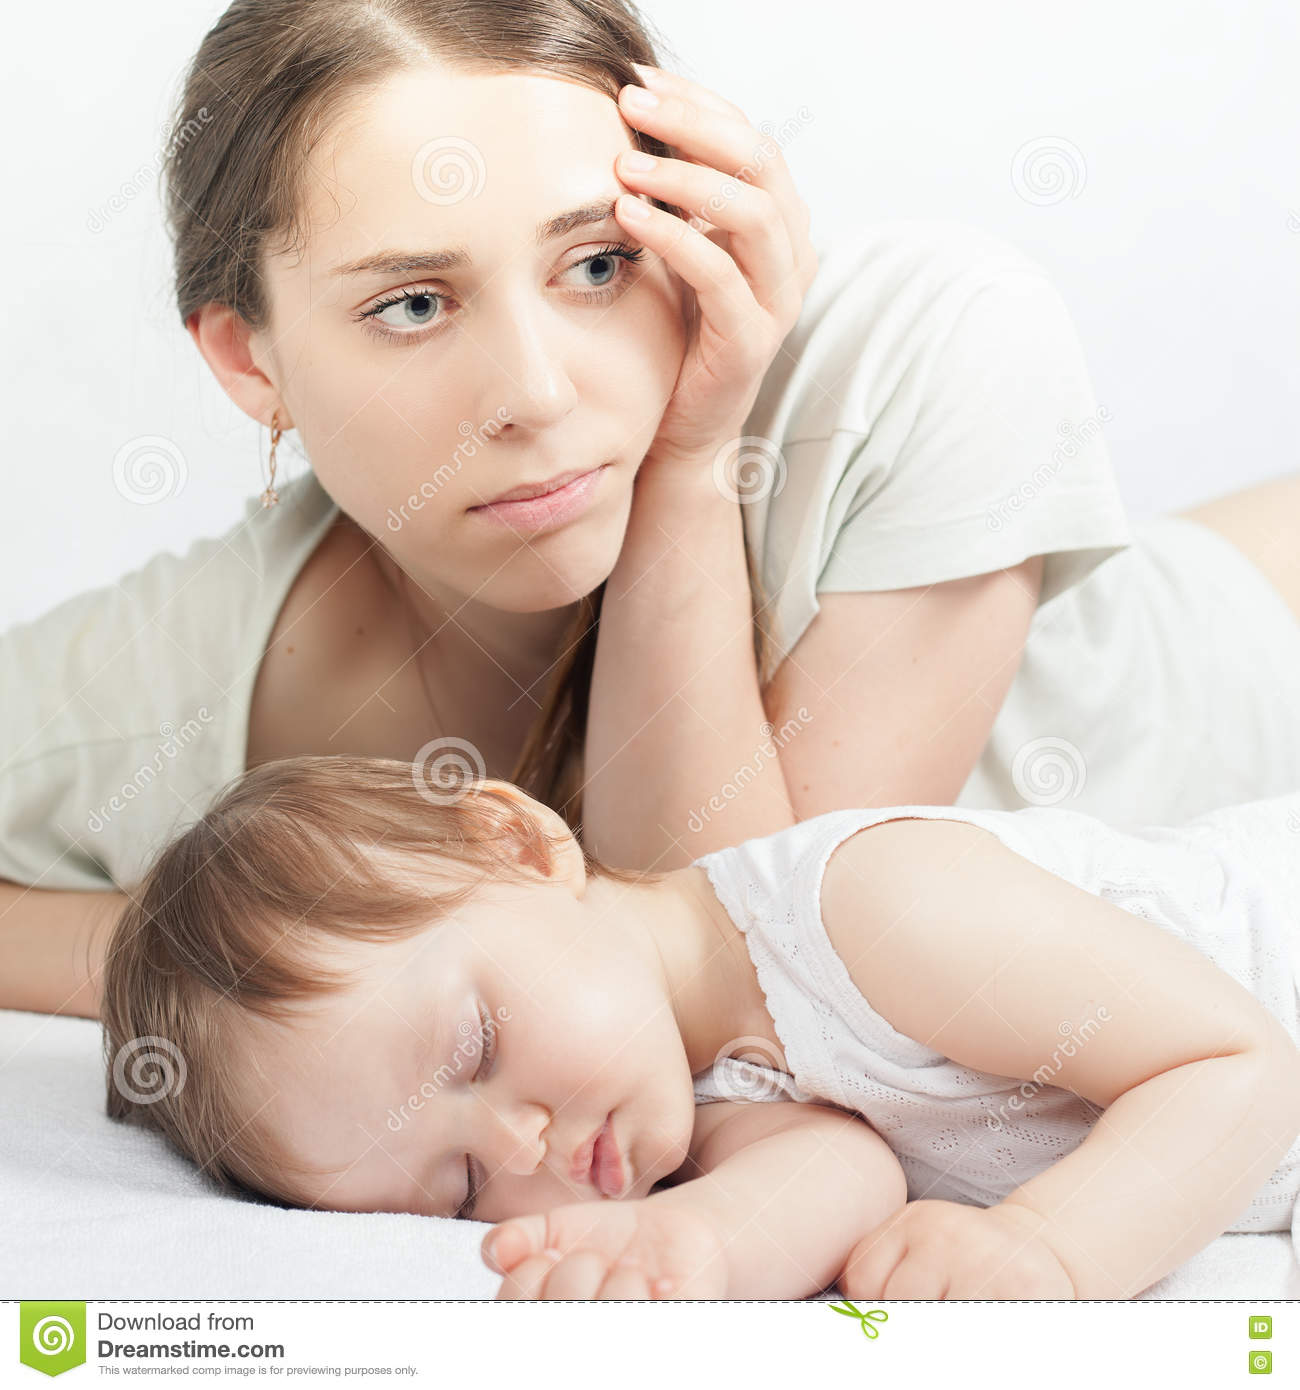 Sad Mother With Baby Stock Photo - Image: 71163320 Baby Girl Crying Animation